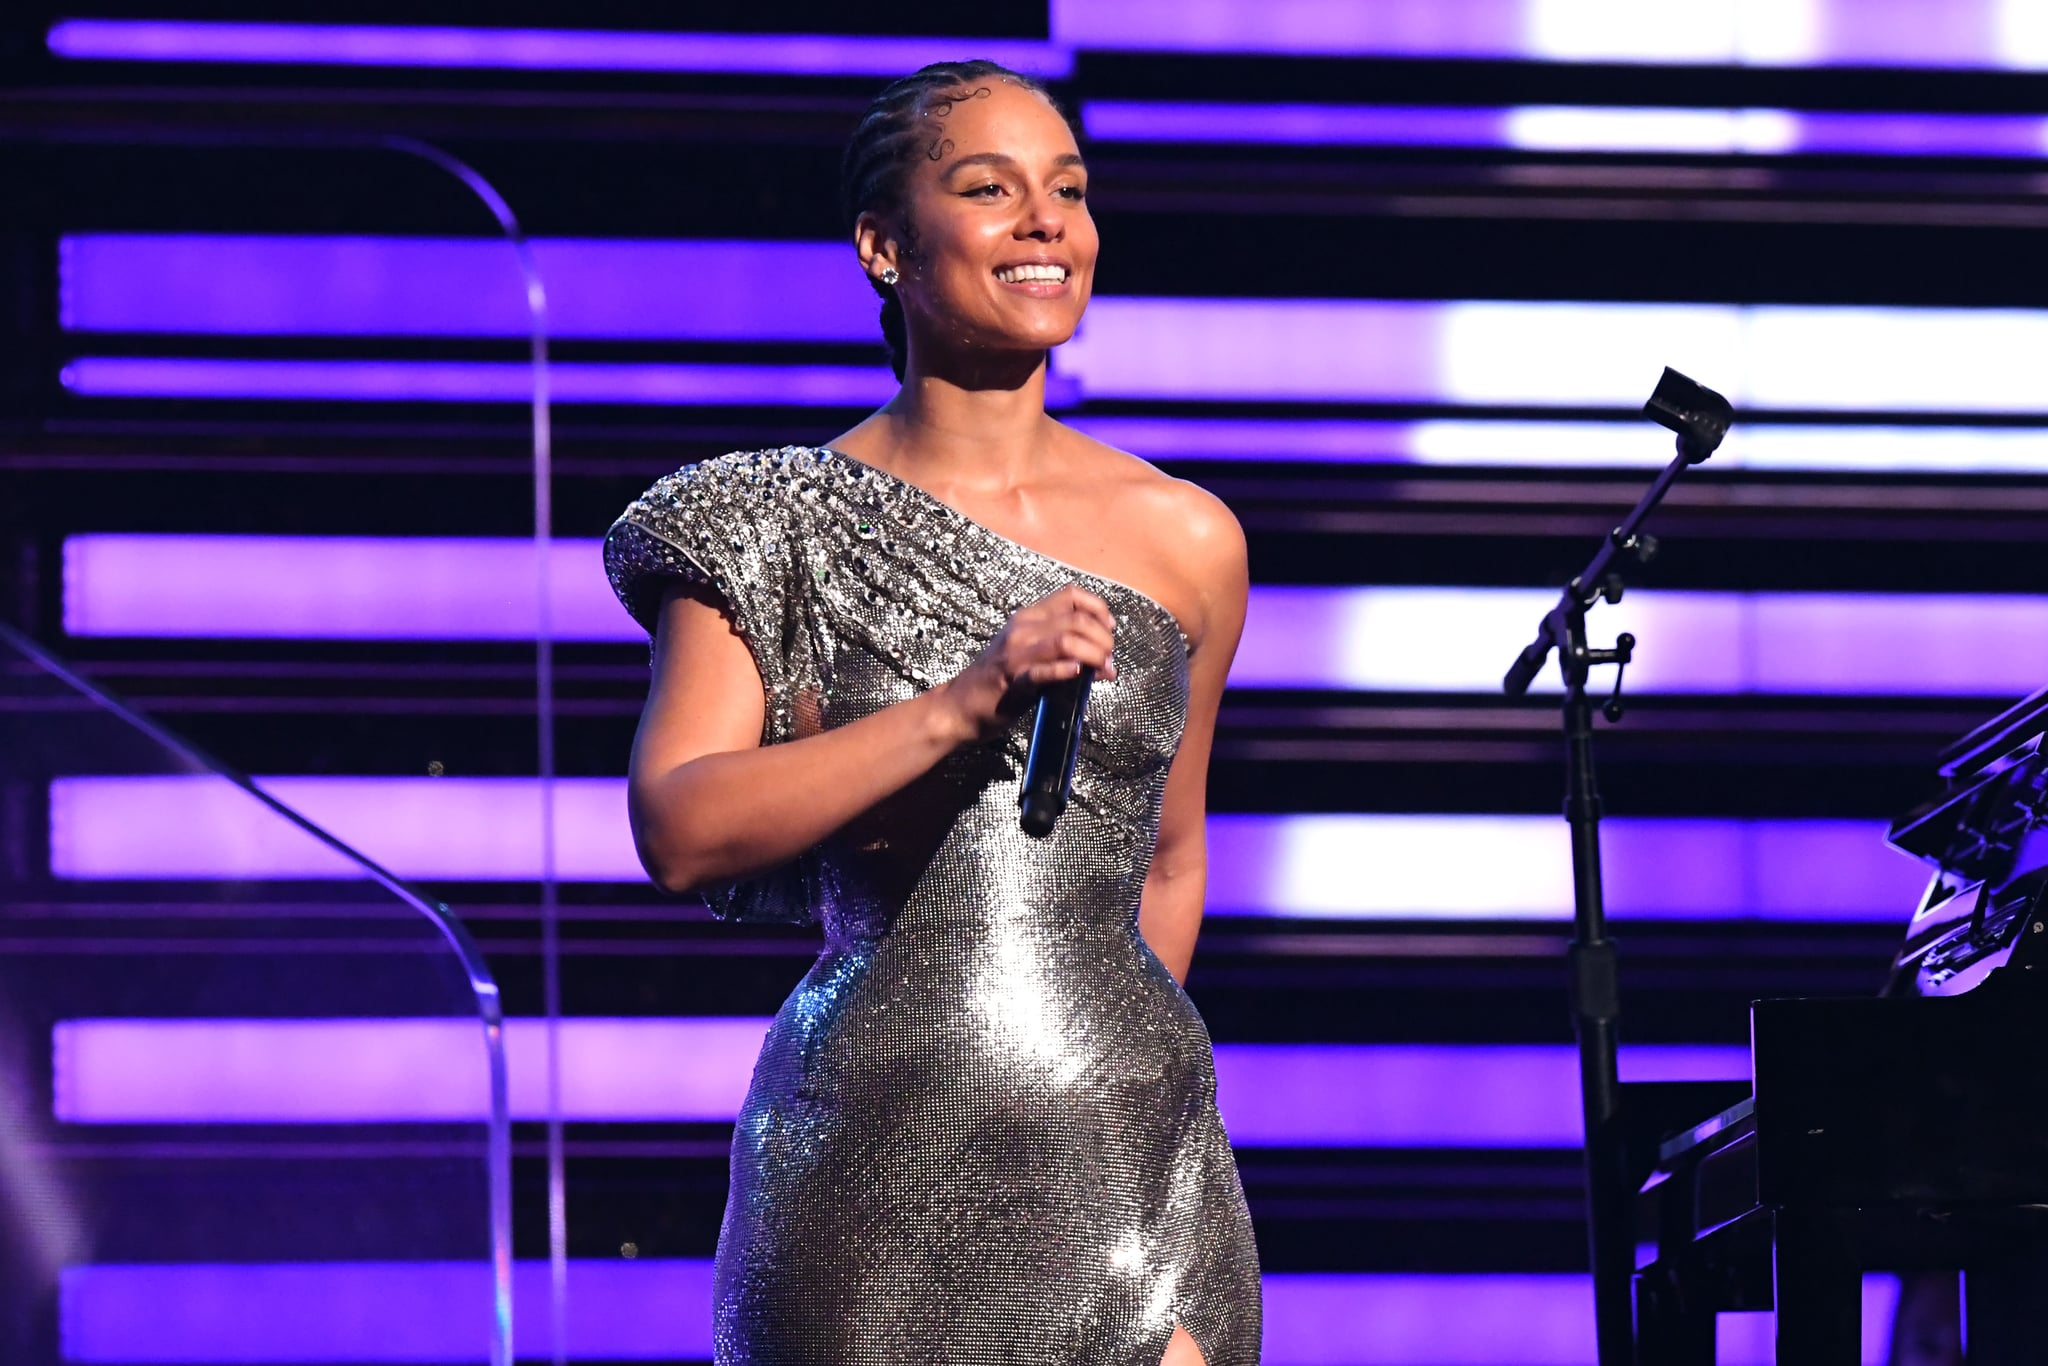 LOS ANGELES, CALIFORNIA - JANUARY 26: Host Alicia Keys performs onstage during the 62nd Annual GRAMMY Awards at Staples Centre on January 26, 2020 in Los Angeles, California. (Photo by Jeff Kravitz/FilmMagic)